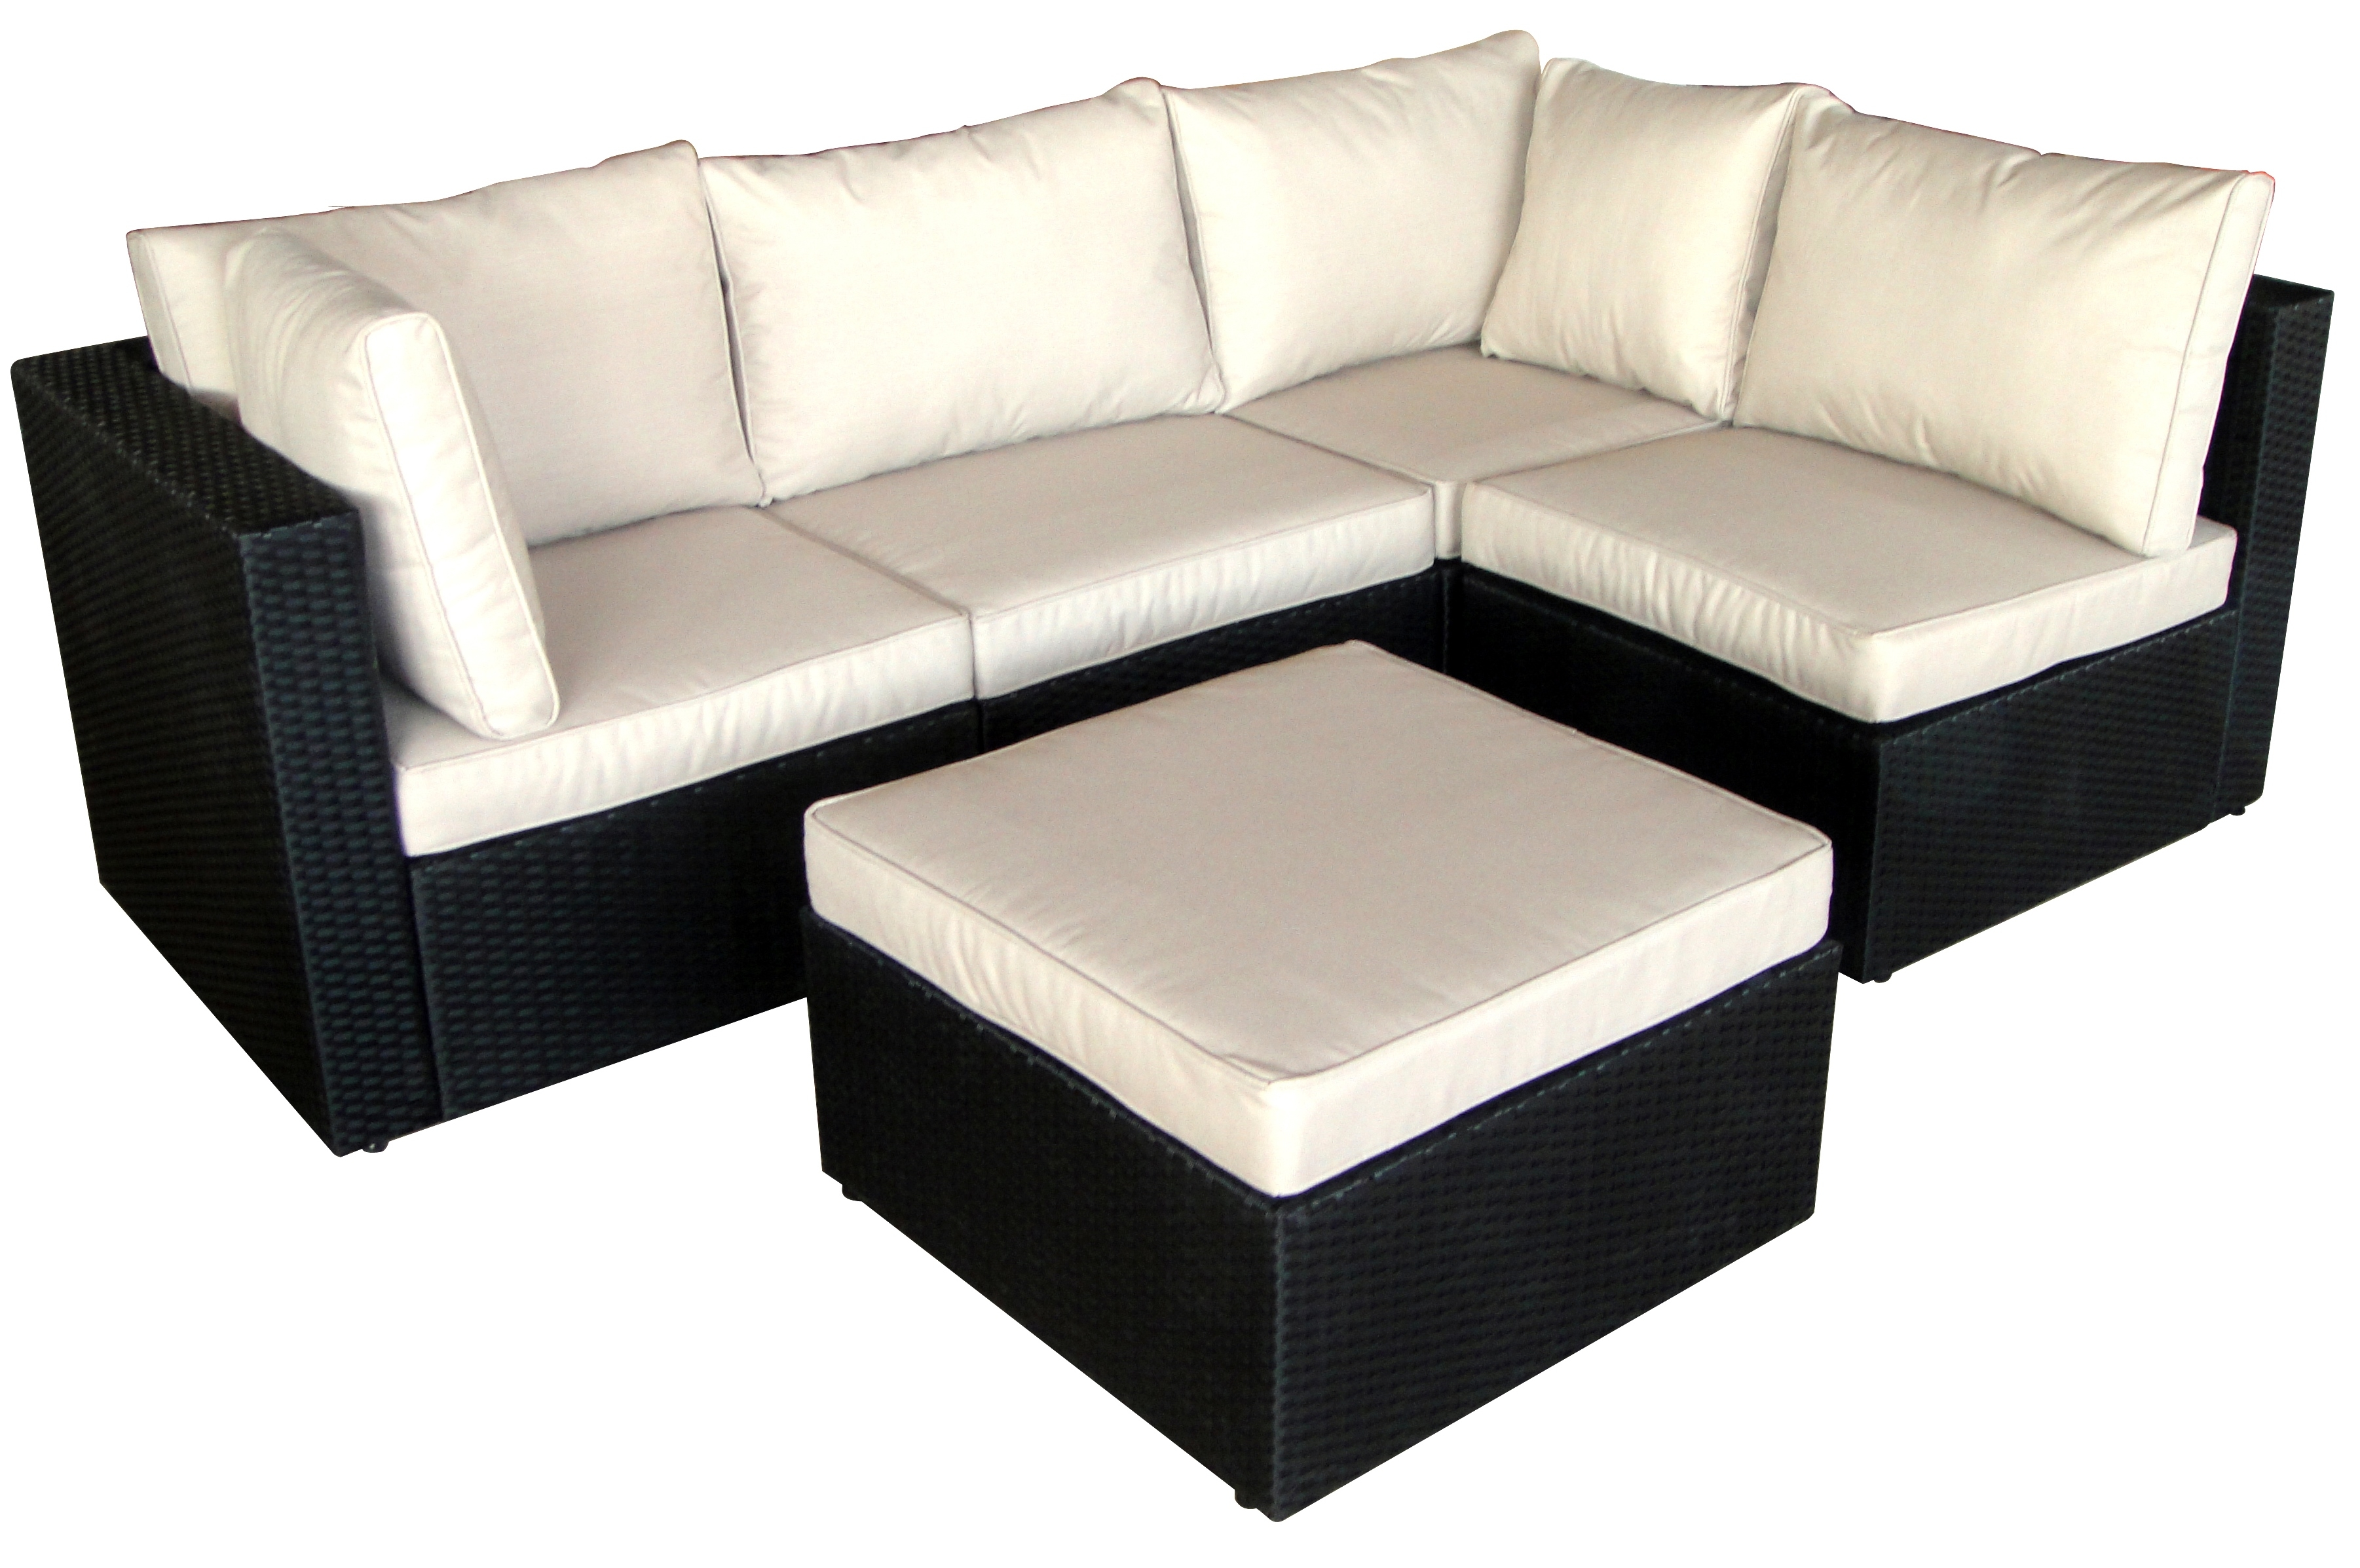 salon de jardin 5 places modulable coussin cru r sine noir lamia. Black Bedroom Furniture Sets. Home Design Ideas